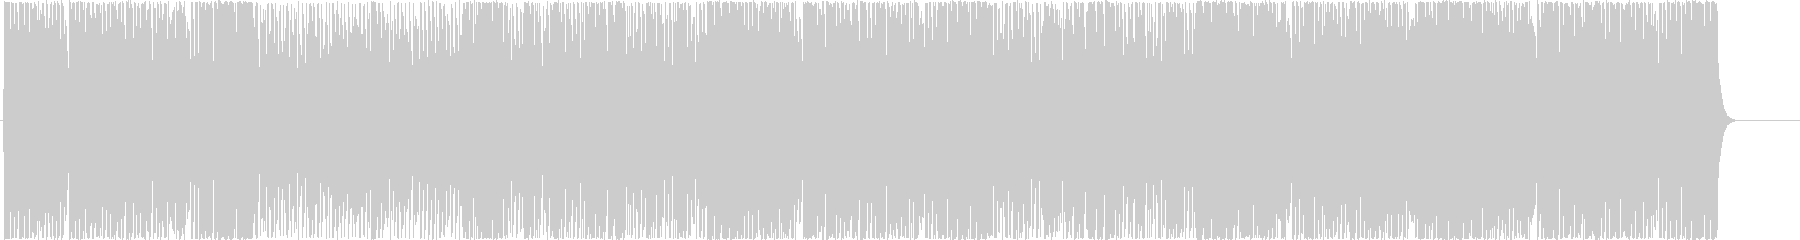 Energetic and dynamic BGM's unreproduced waveform